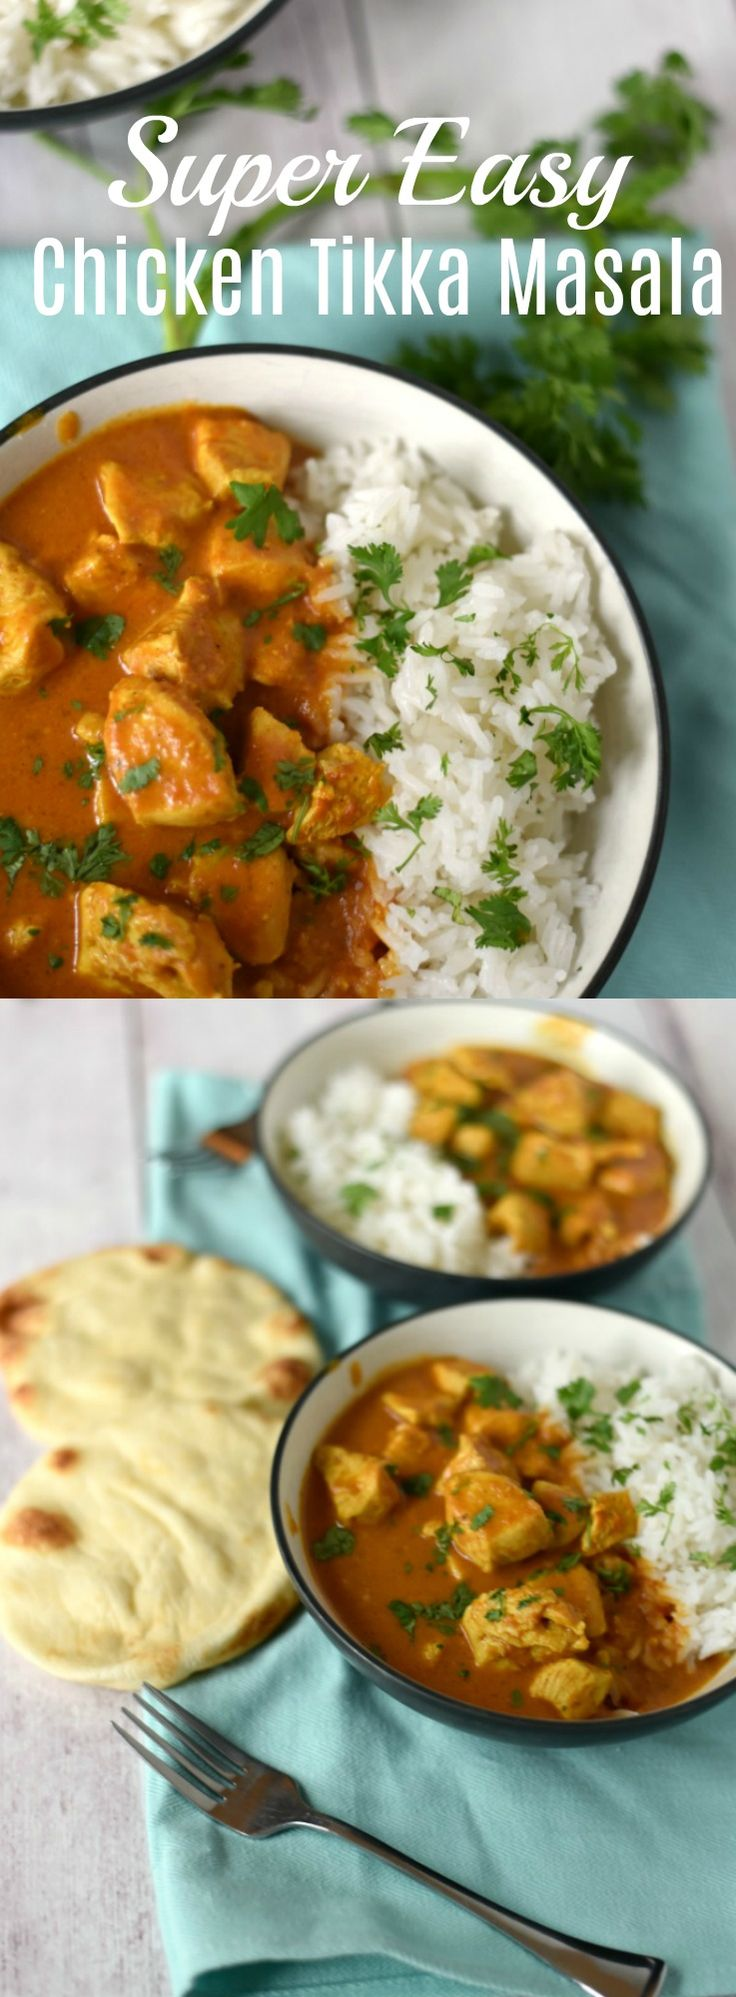 This easy Chicken Tikka Masala recipe is ready in about 20 minutes thanks to the pre-made masala paste that turns this into a pantry-staple, quick make meal your family will love! 20 Minute Meal, Freezer Meal (kind of), Indian recipe, Easy Recipe,  via @GingeredWhisk